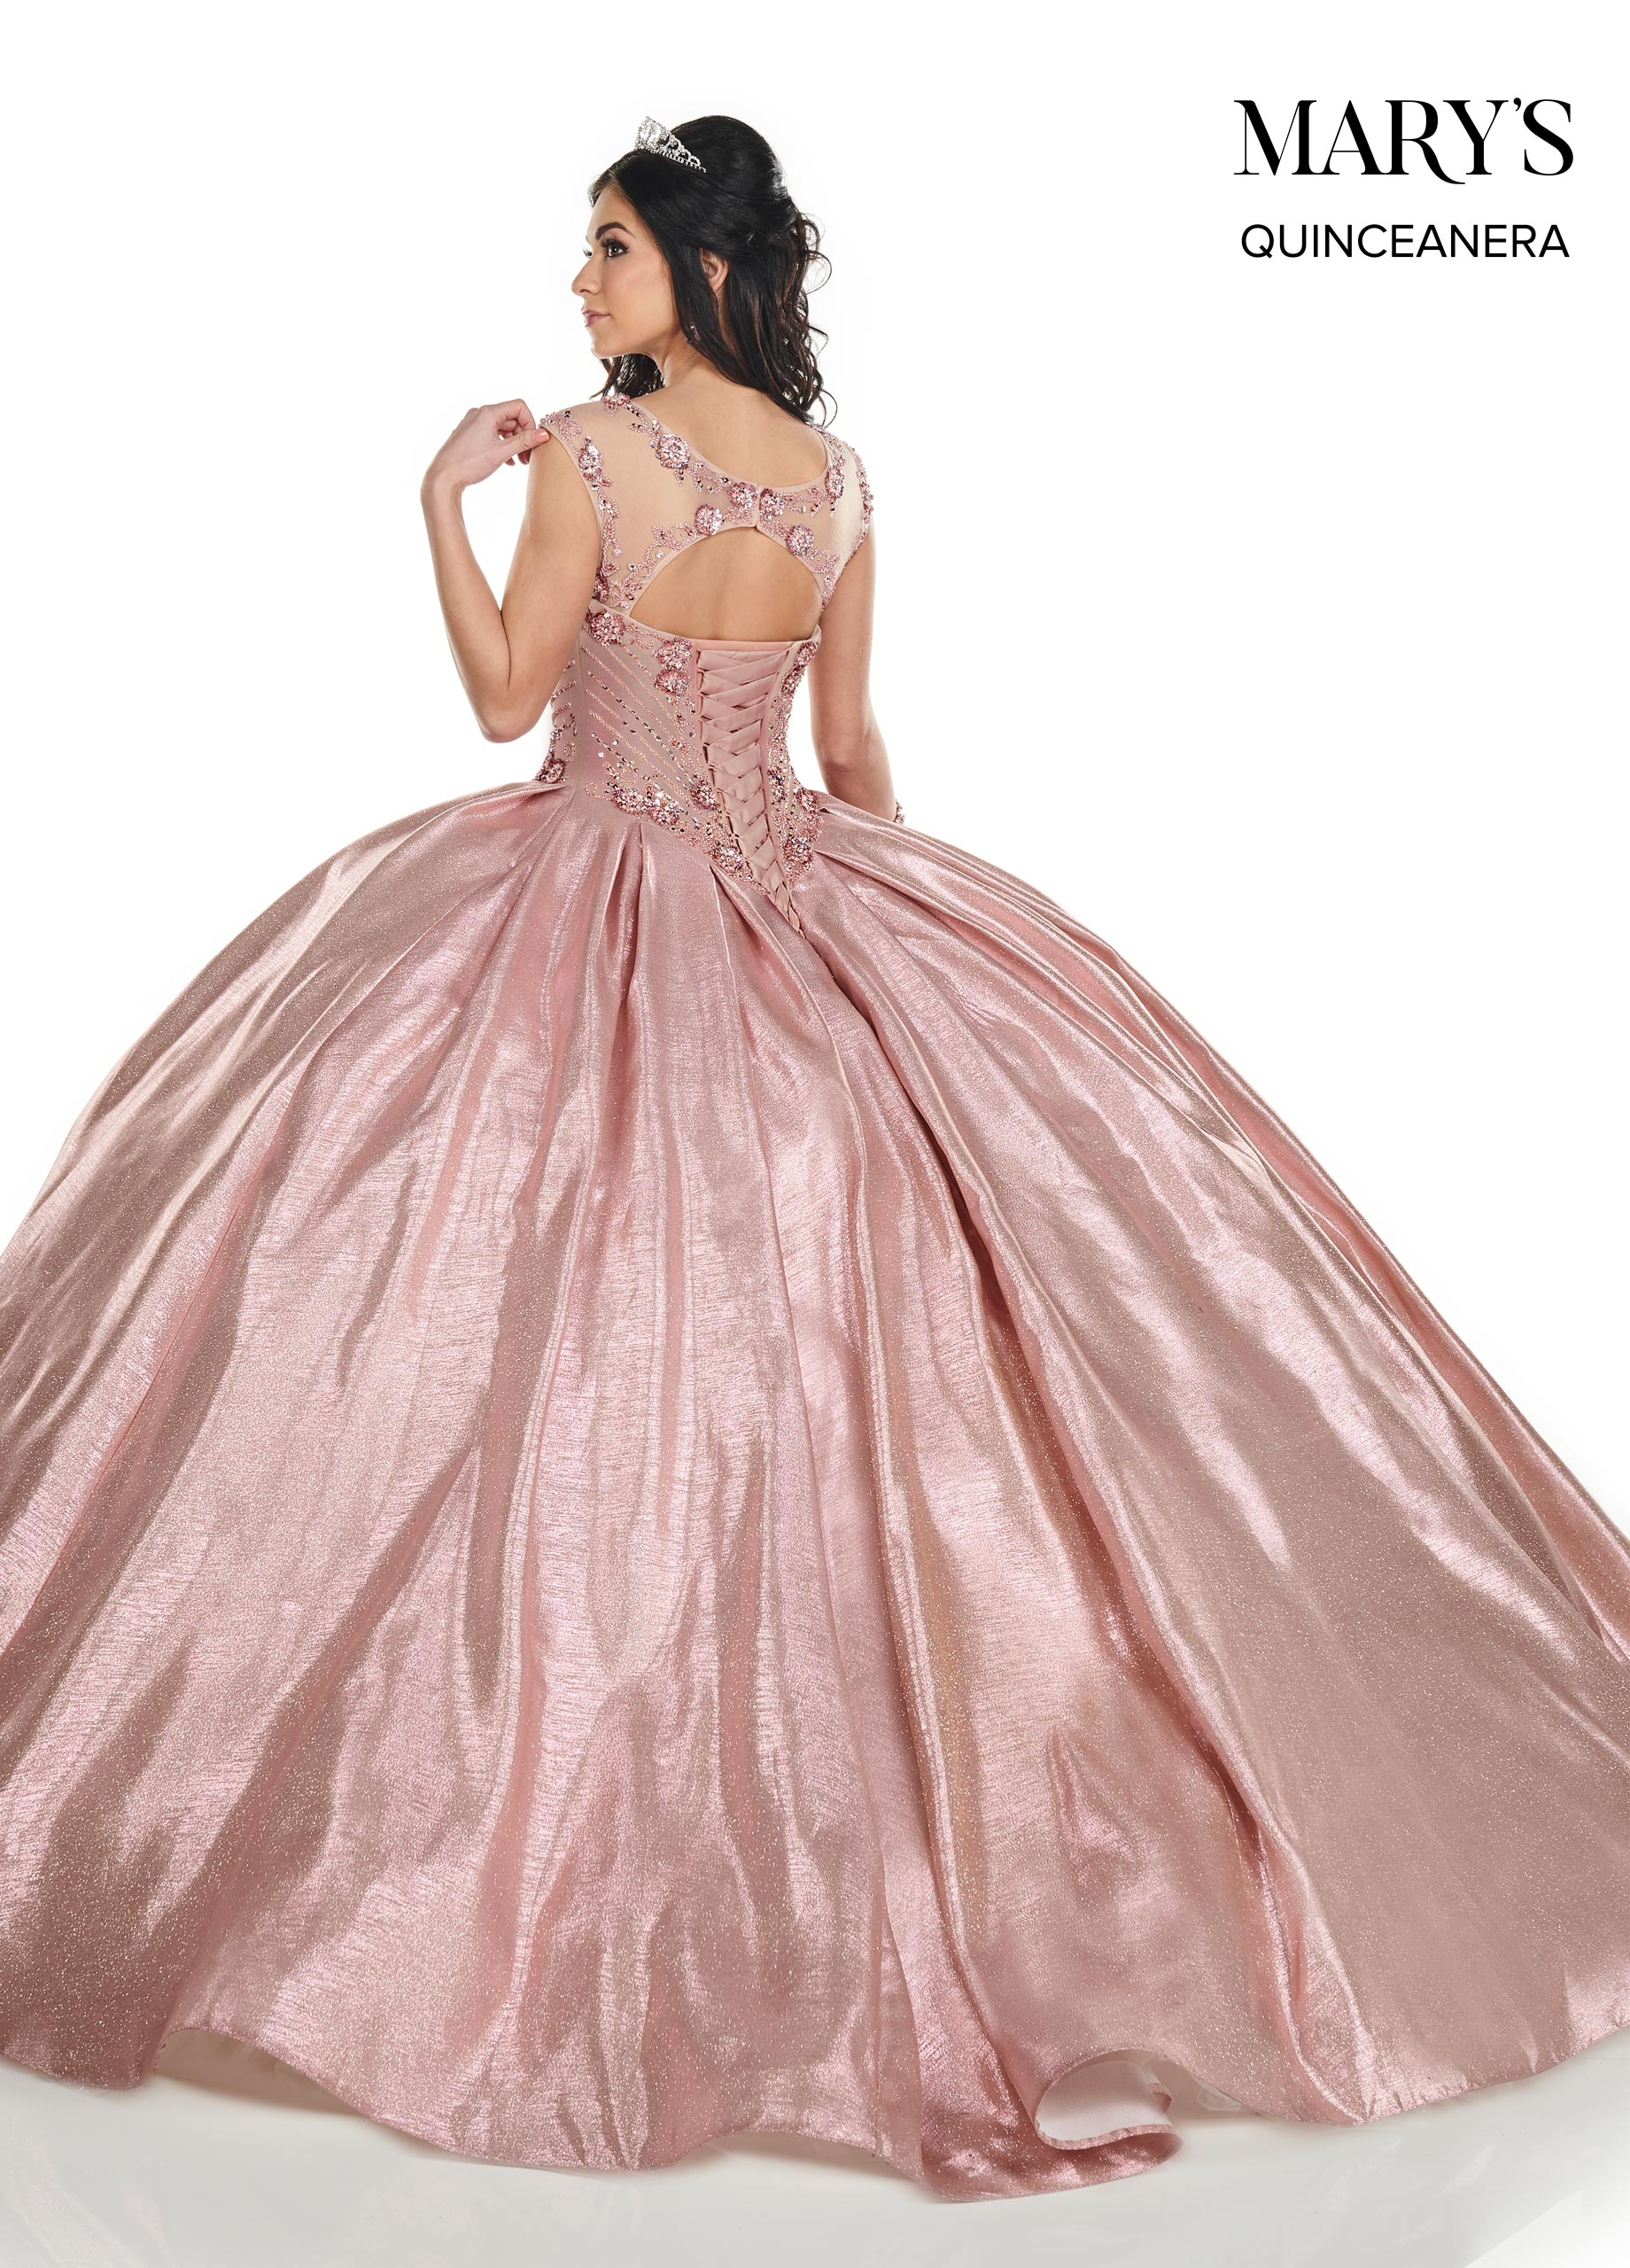 Marys Quinceanera Dresses | Mary's Quinceanera | Style - MQ2090